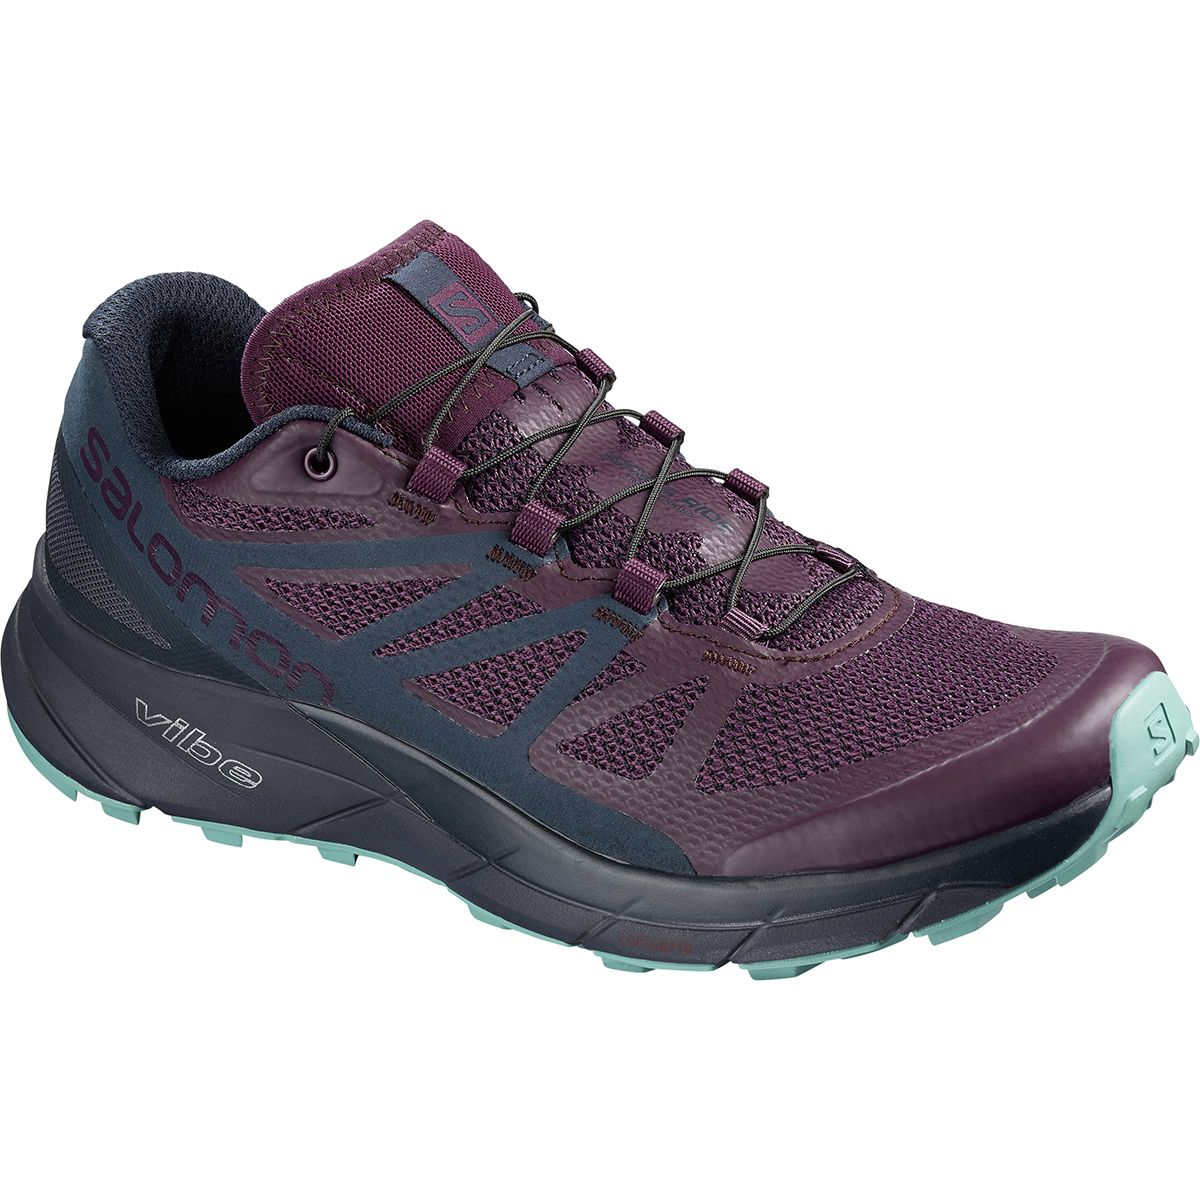 Salomon Sense Ride Trail Running Shoe Women's